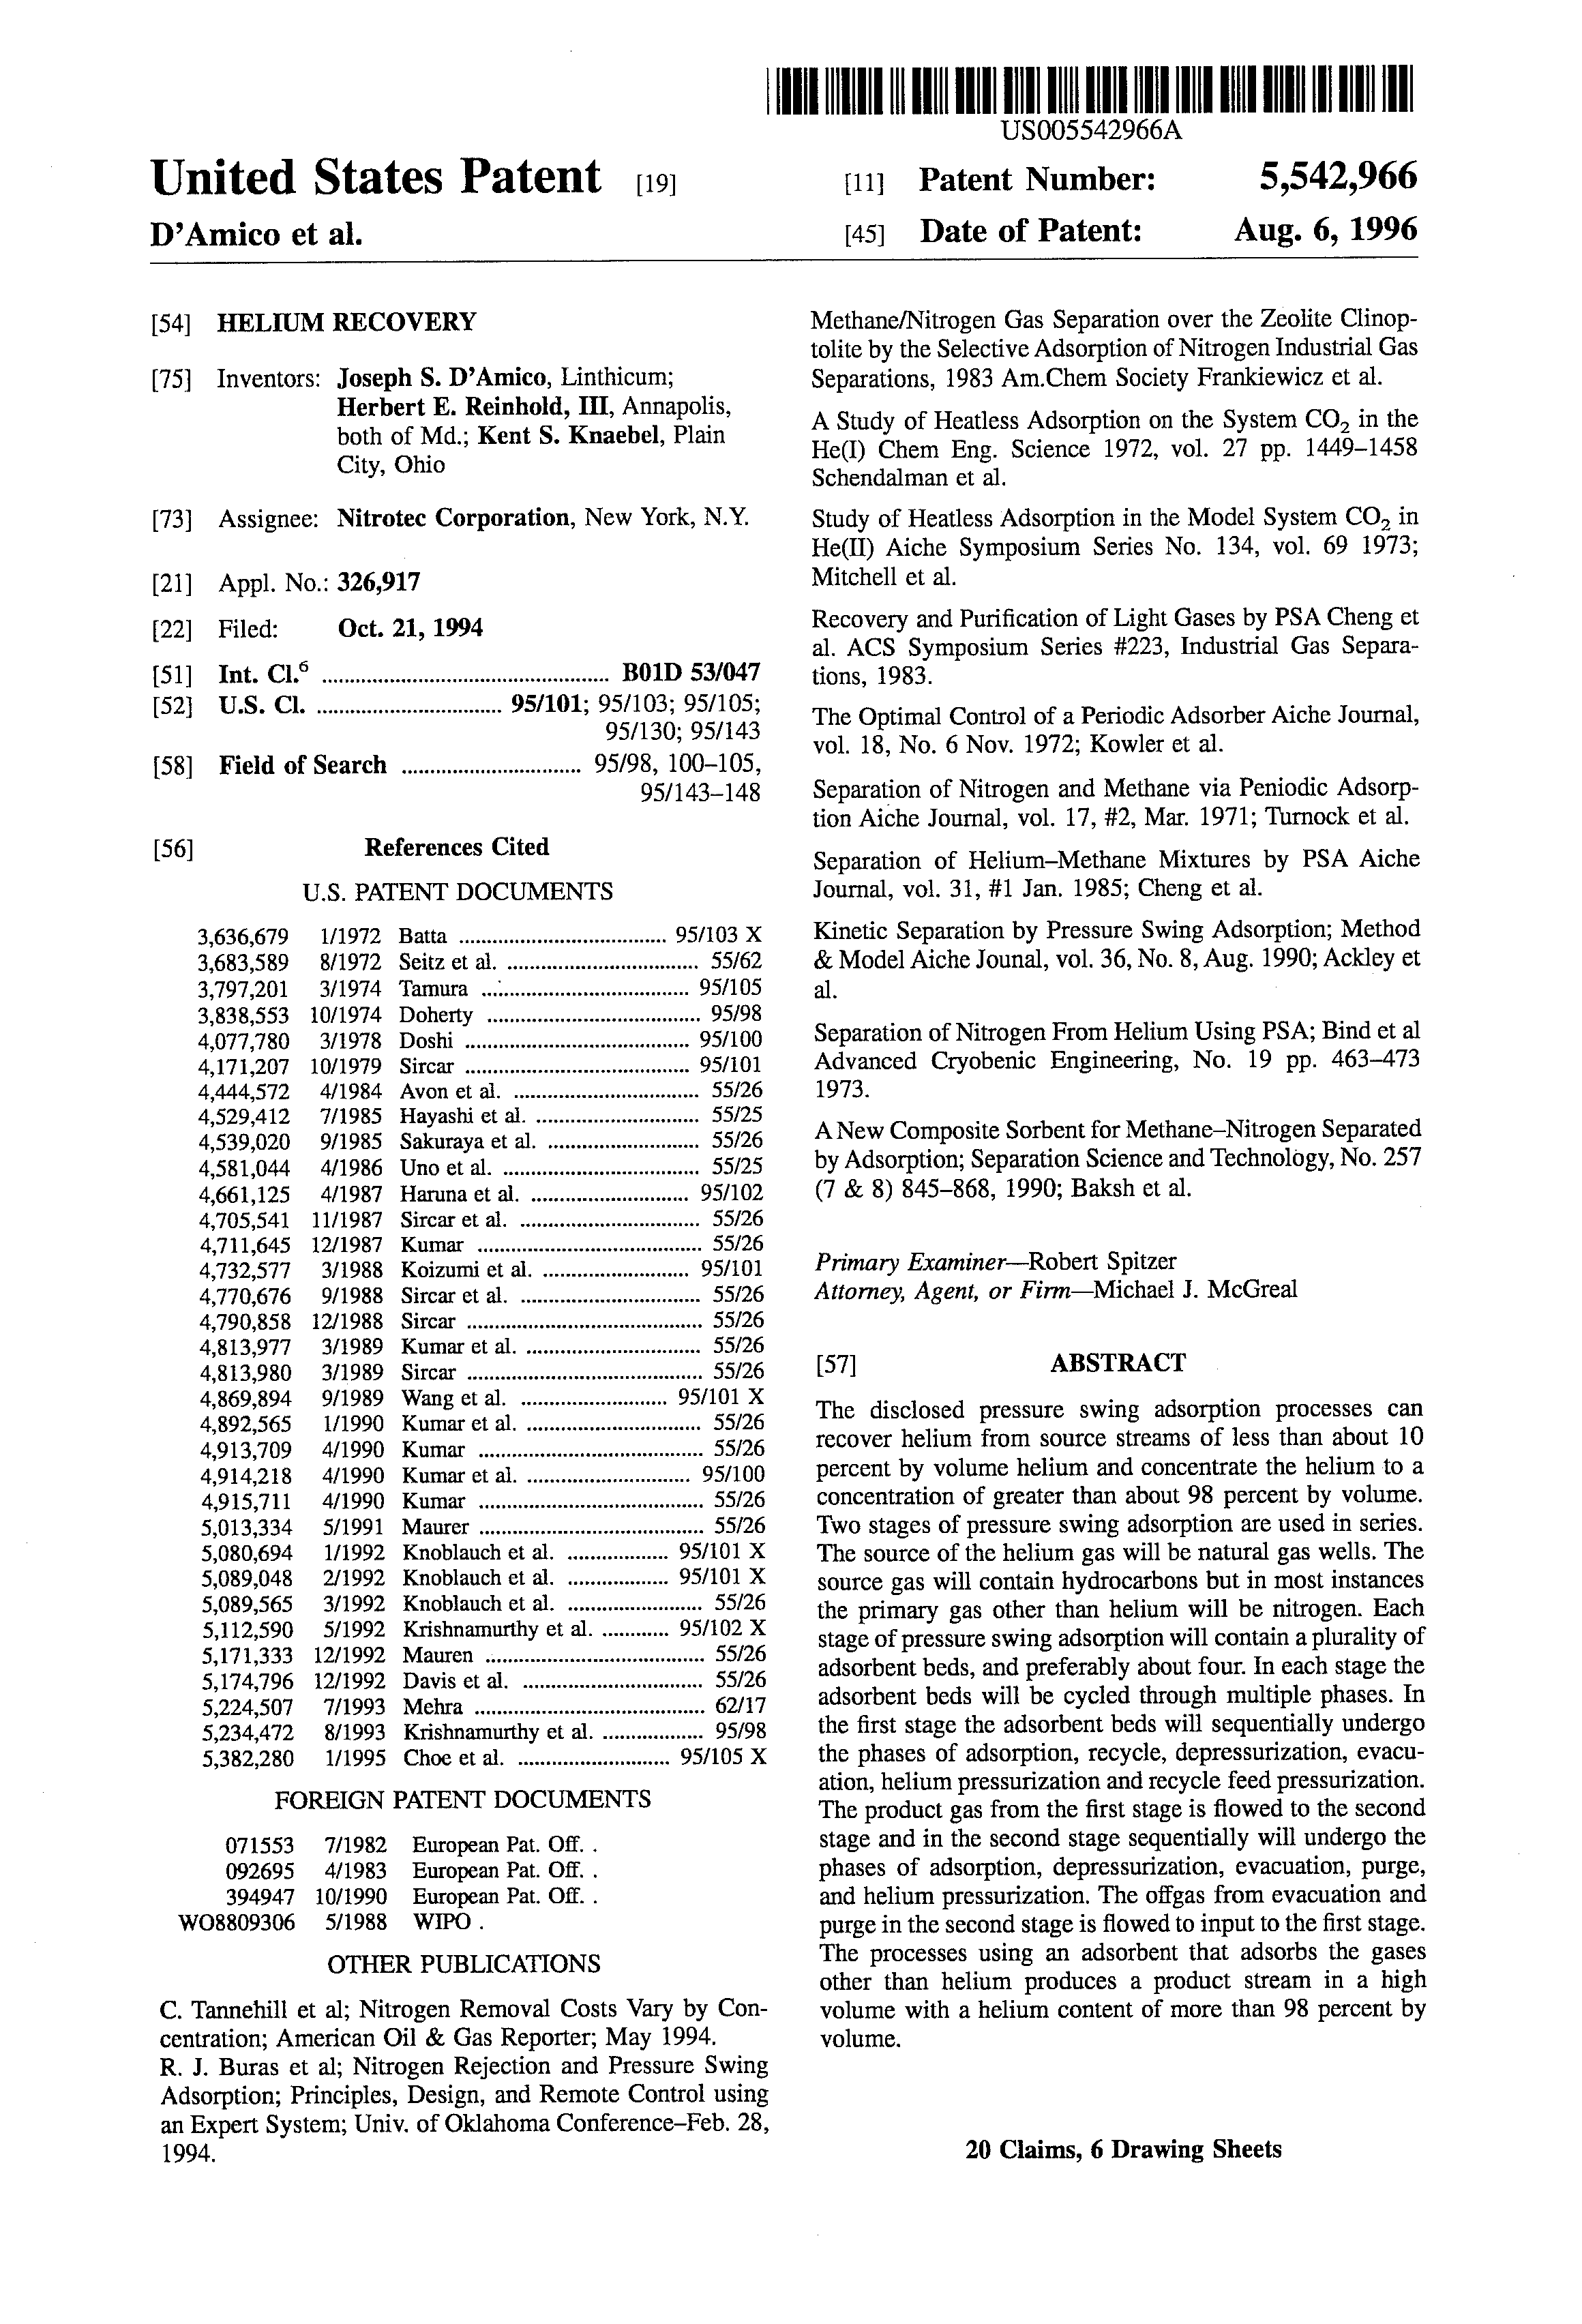 US 5542966 A - Helium Recovery - The Lens - Free & Open